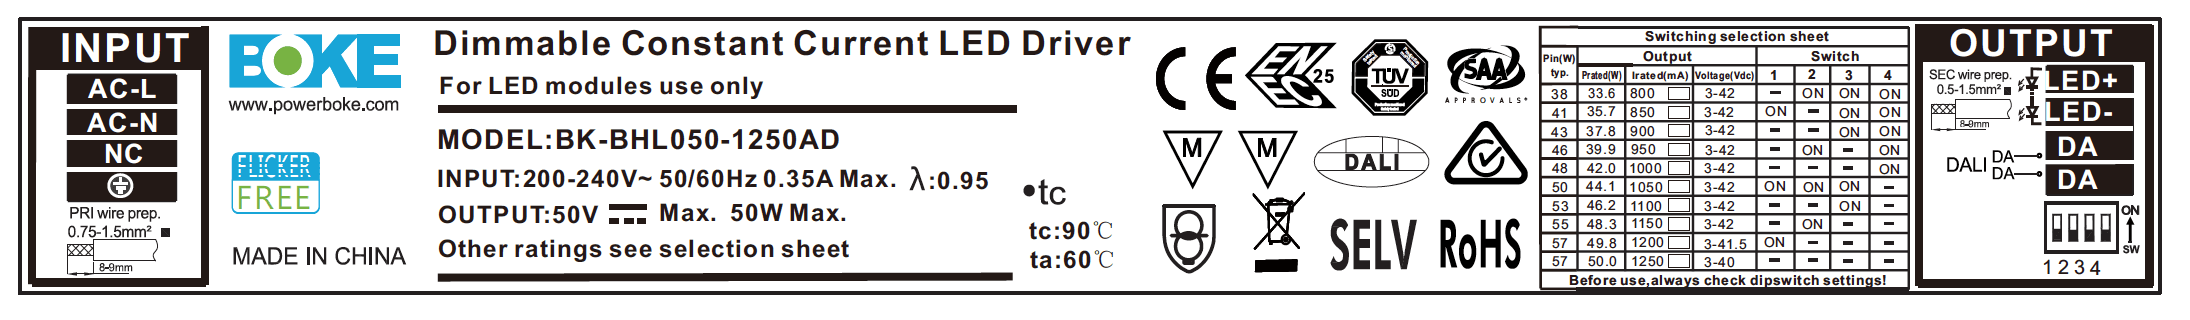 BK-BHL050-1250AD DALI Dimmable Label